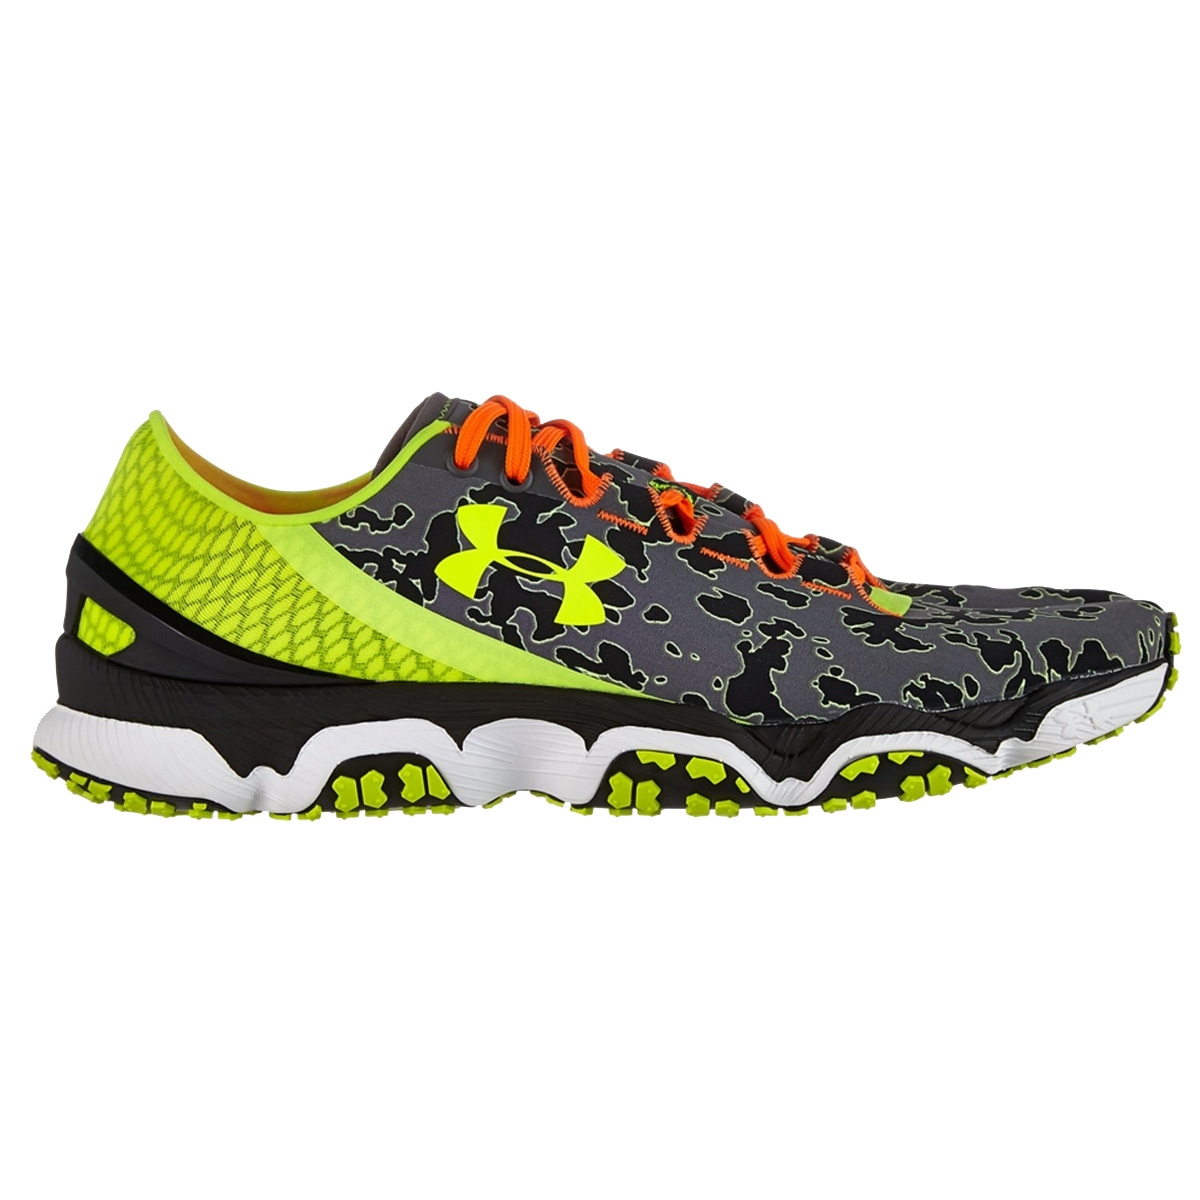 Image of Under Armour Speedform XC Trail Running Shoe (Men s) - Charcoal 297d8910f173